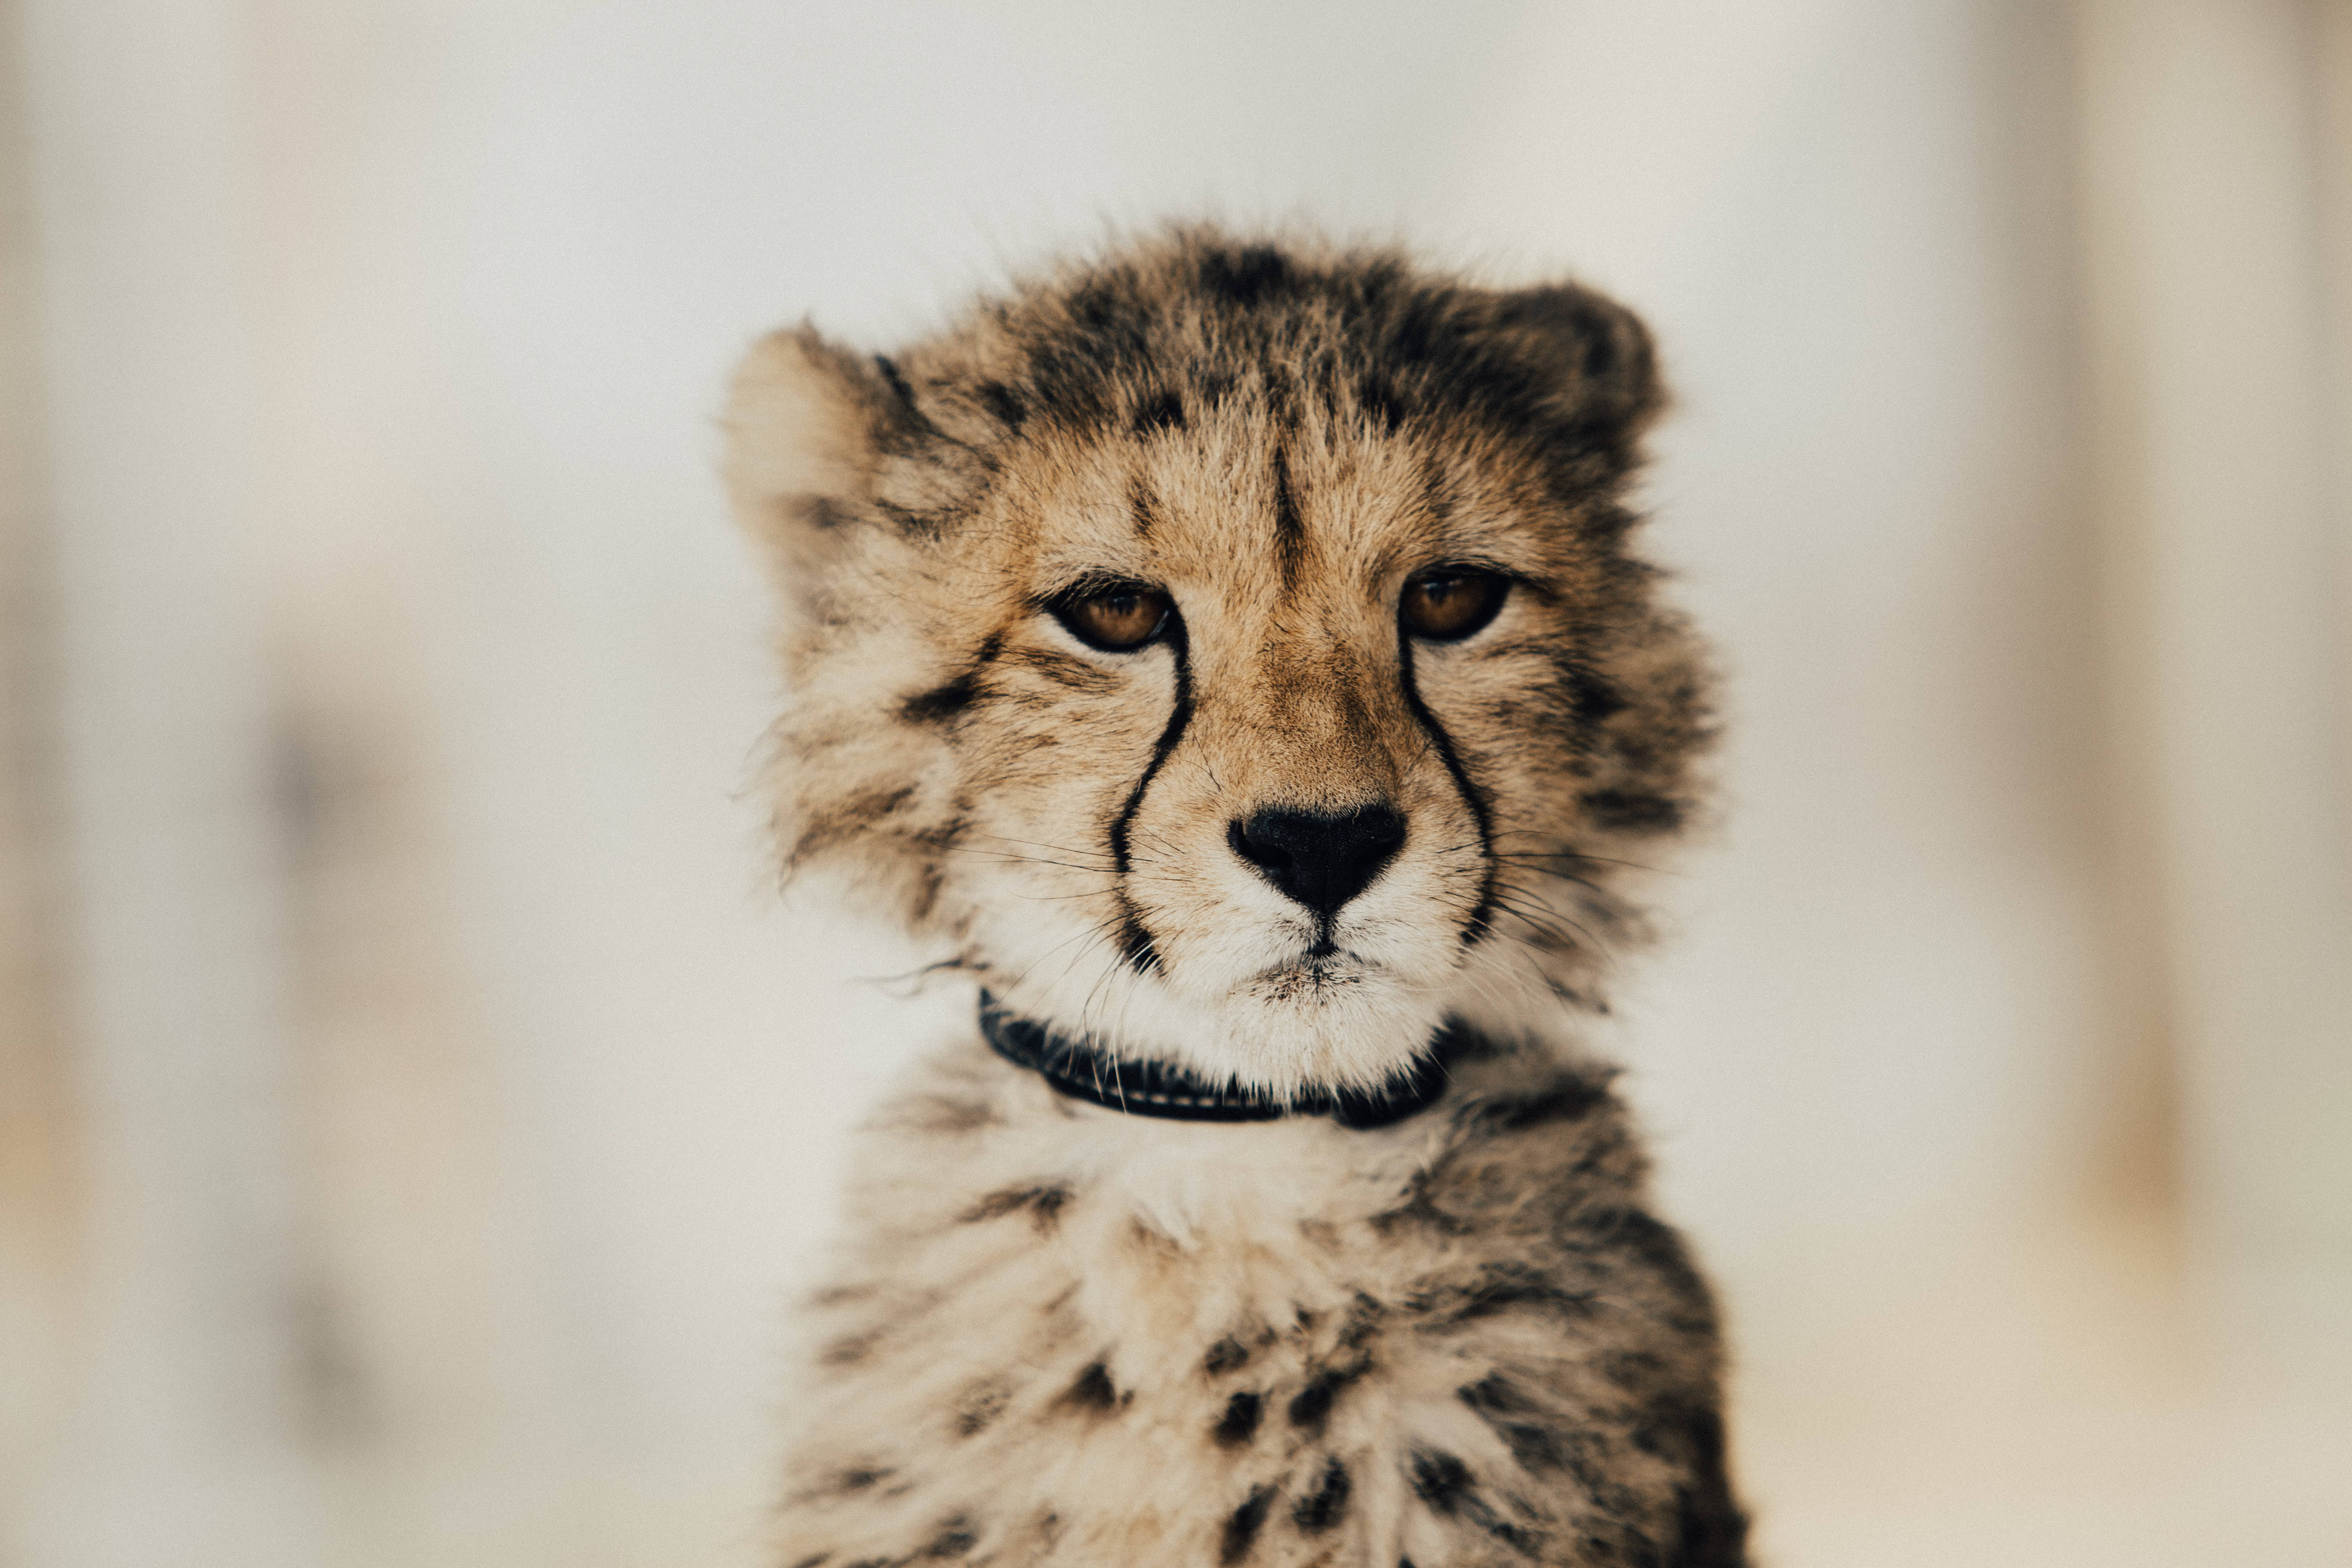 Pensive portrait of a young wild cheetah